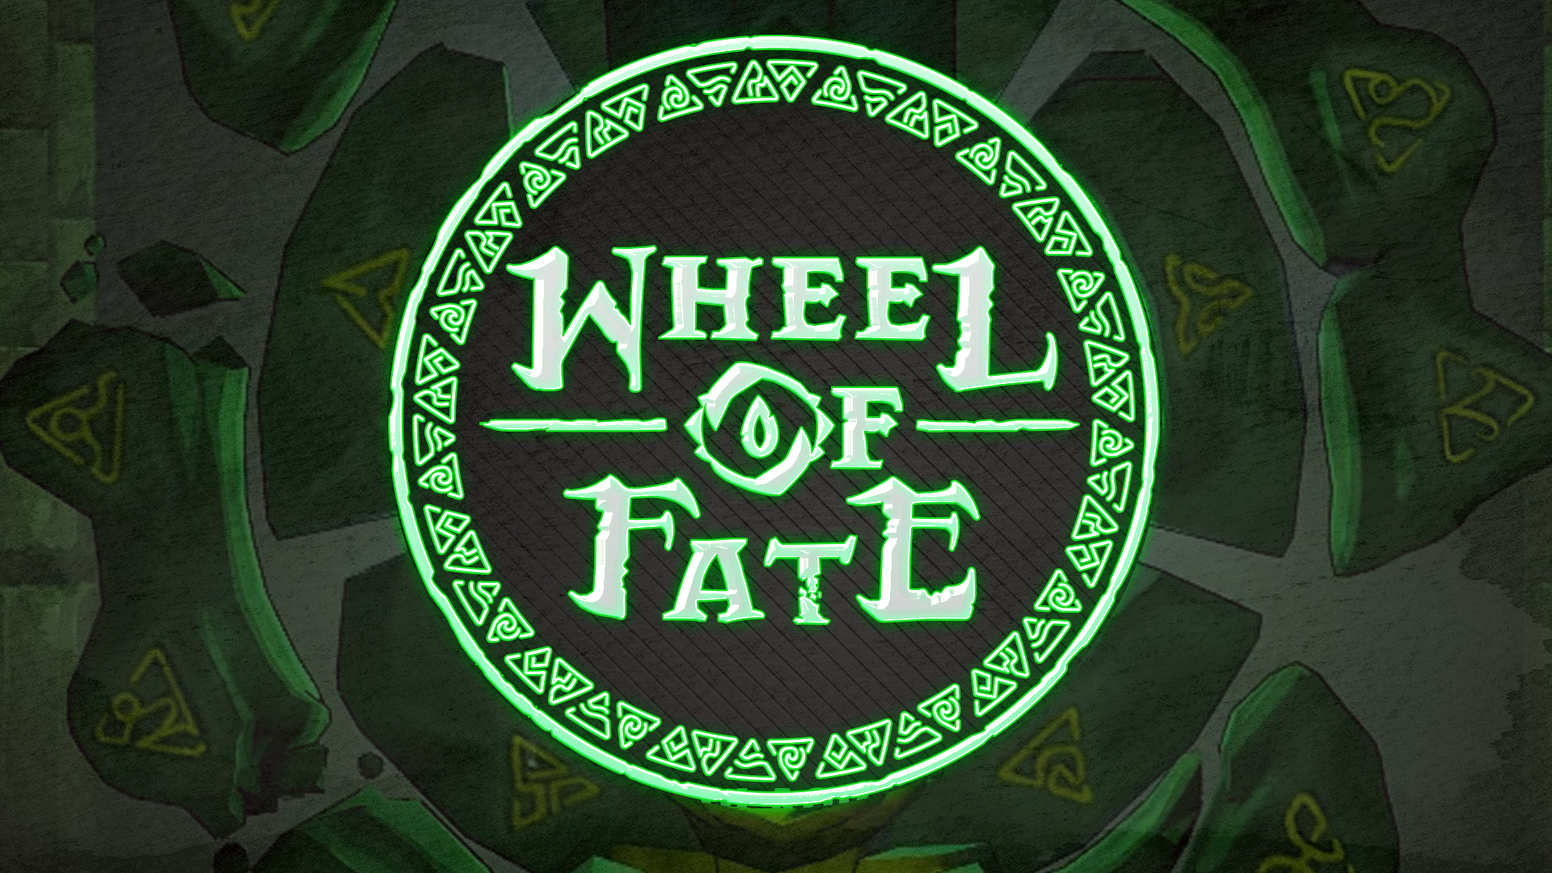 Wheel of Fate is an RPG that changes reality around you, using AI to adapt the world to your in-game choices. It is filled with rich, dynamic content that creates massive replaybility. Made by a Mass Effect 2 game designer.